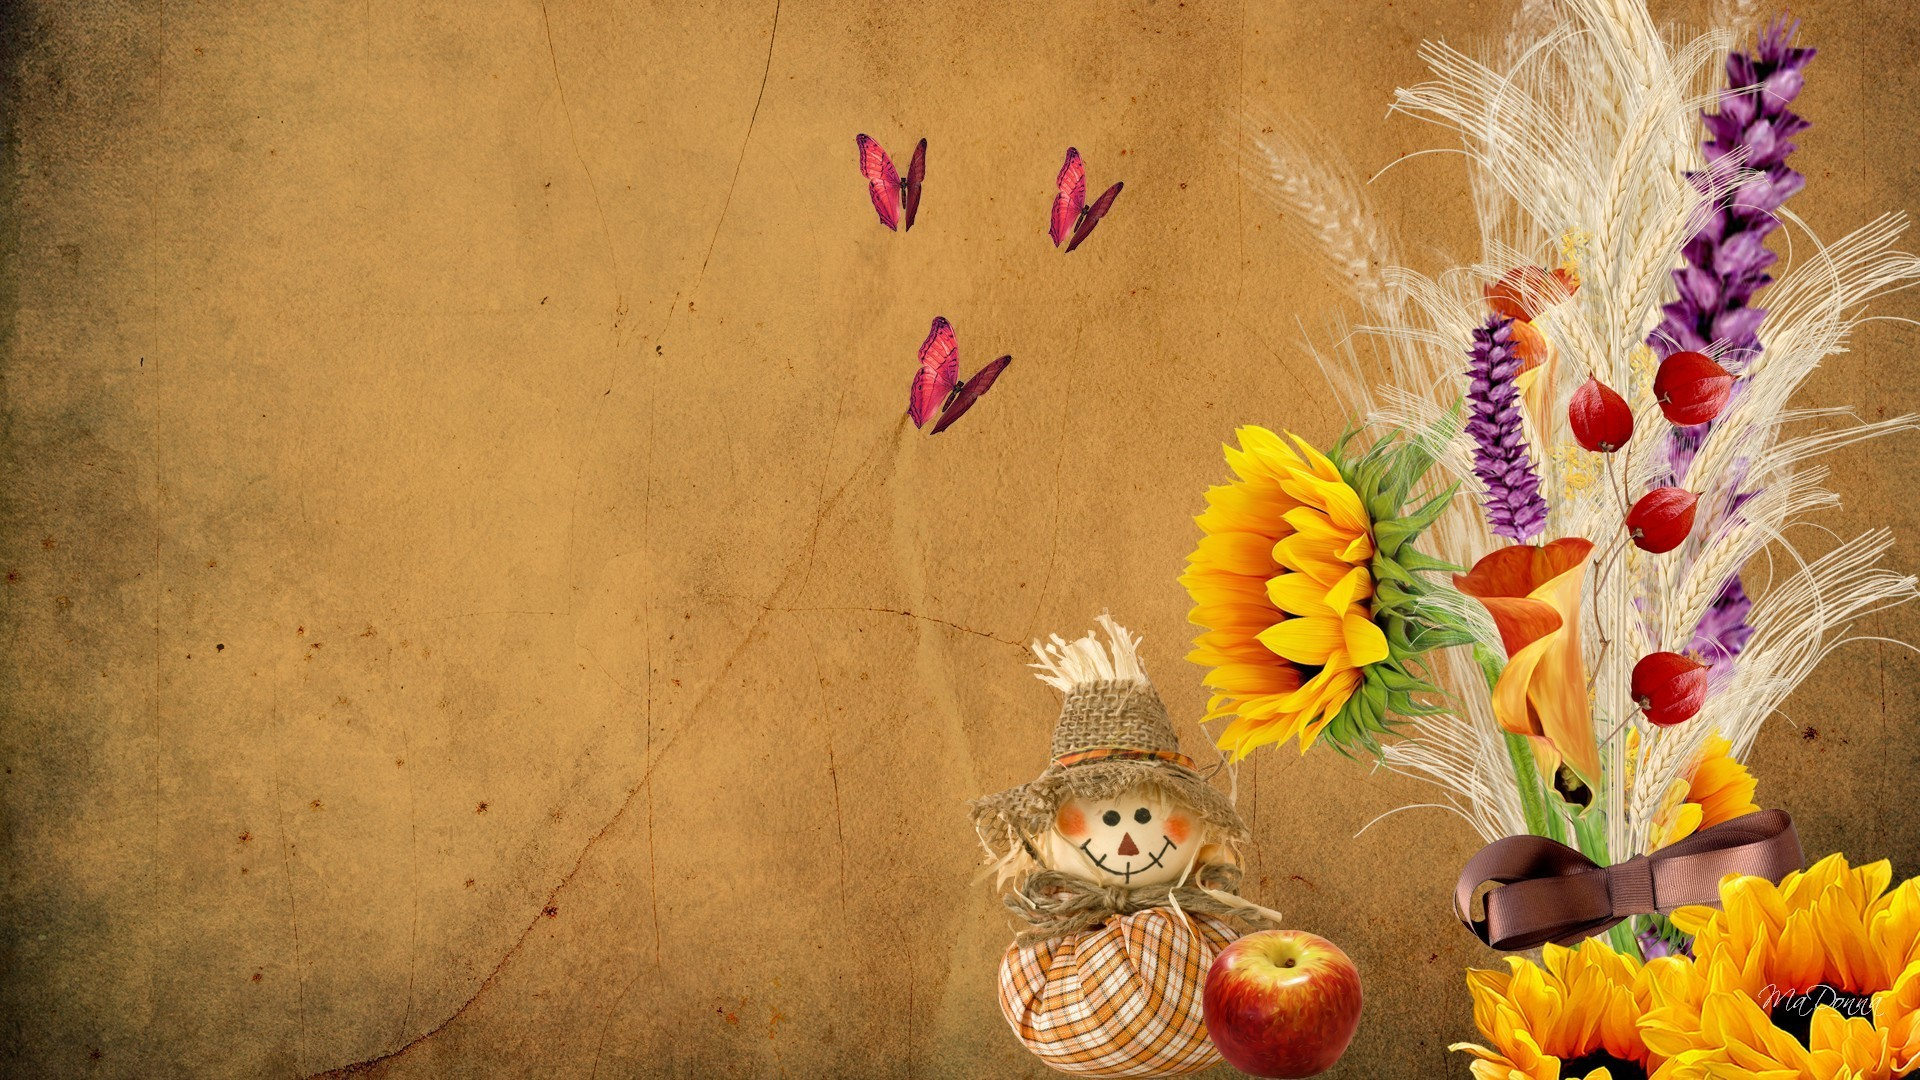 Seeds Tag – Tan Paper Sunflower Autumn Bow Parchment Ribbon Doll Apple  Wheat Seeds Fall Scare